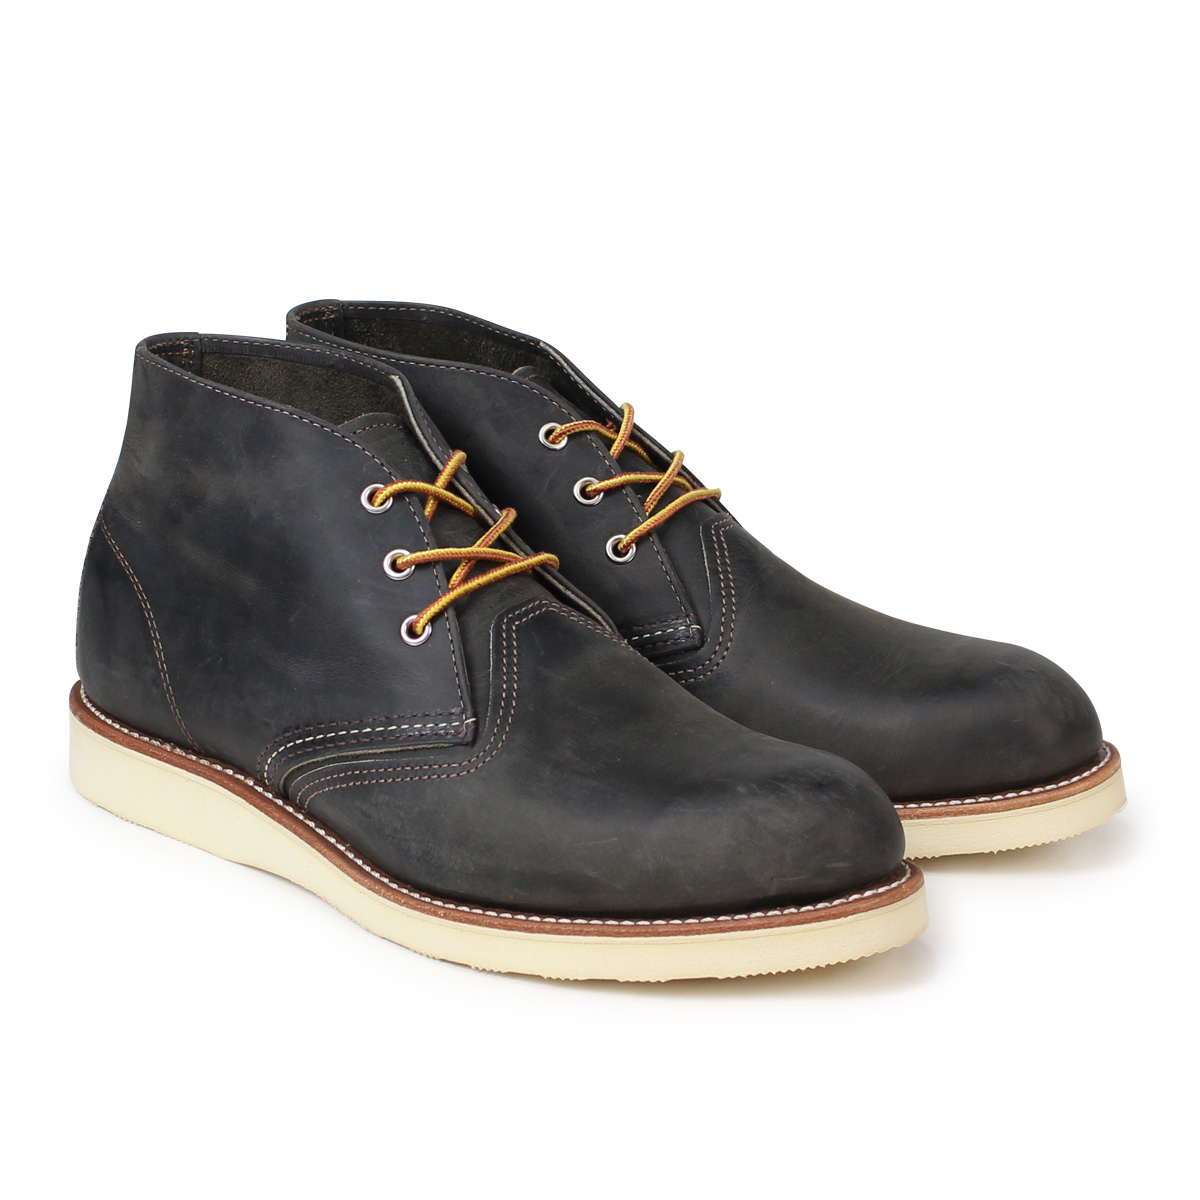 Whats up Sports | Rakuten Global Market: RED WING Red Wing chukka ...